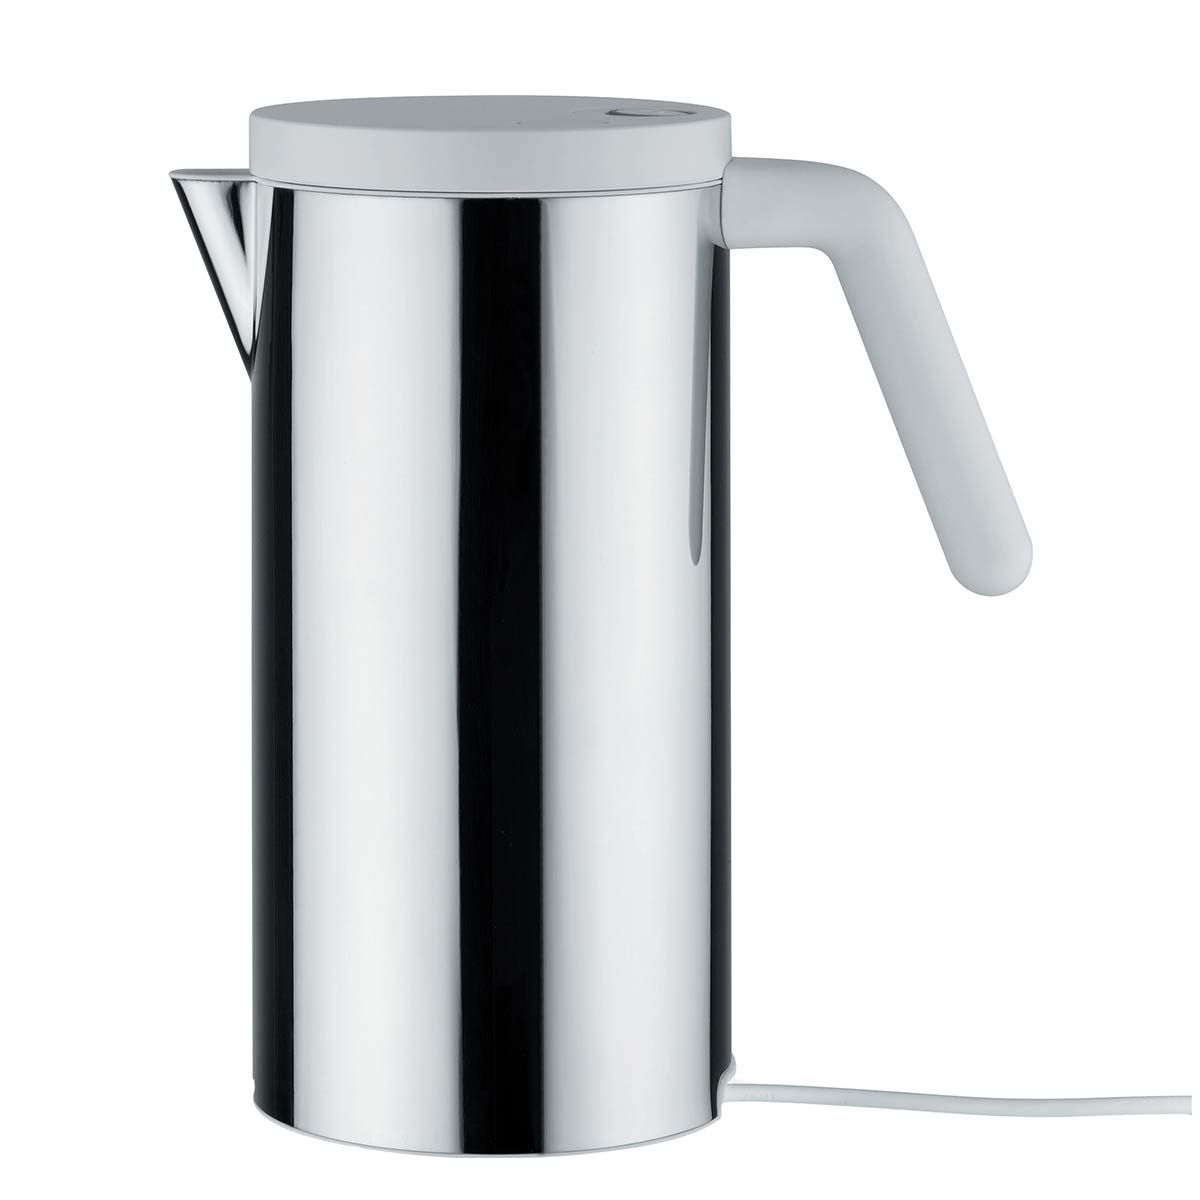 Alessi Wasserkocher Alessi Elektr Wasserkocher Hot It Wasserkocher Alessi Kettle